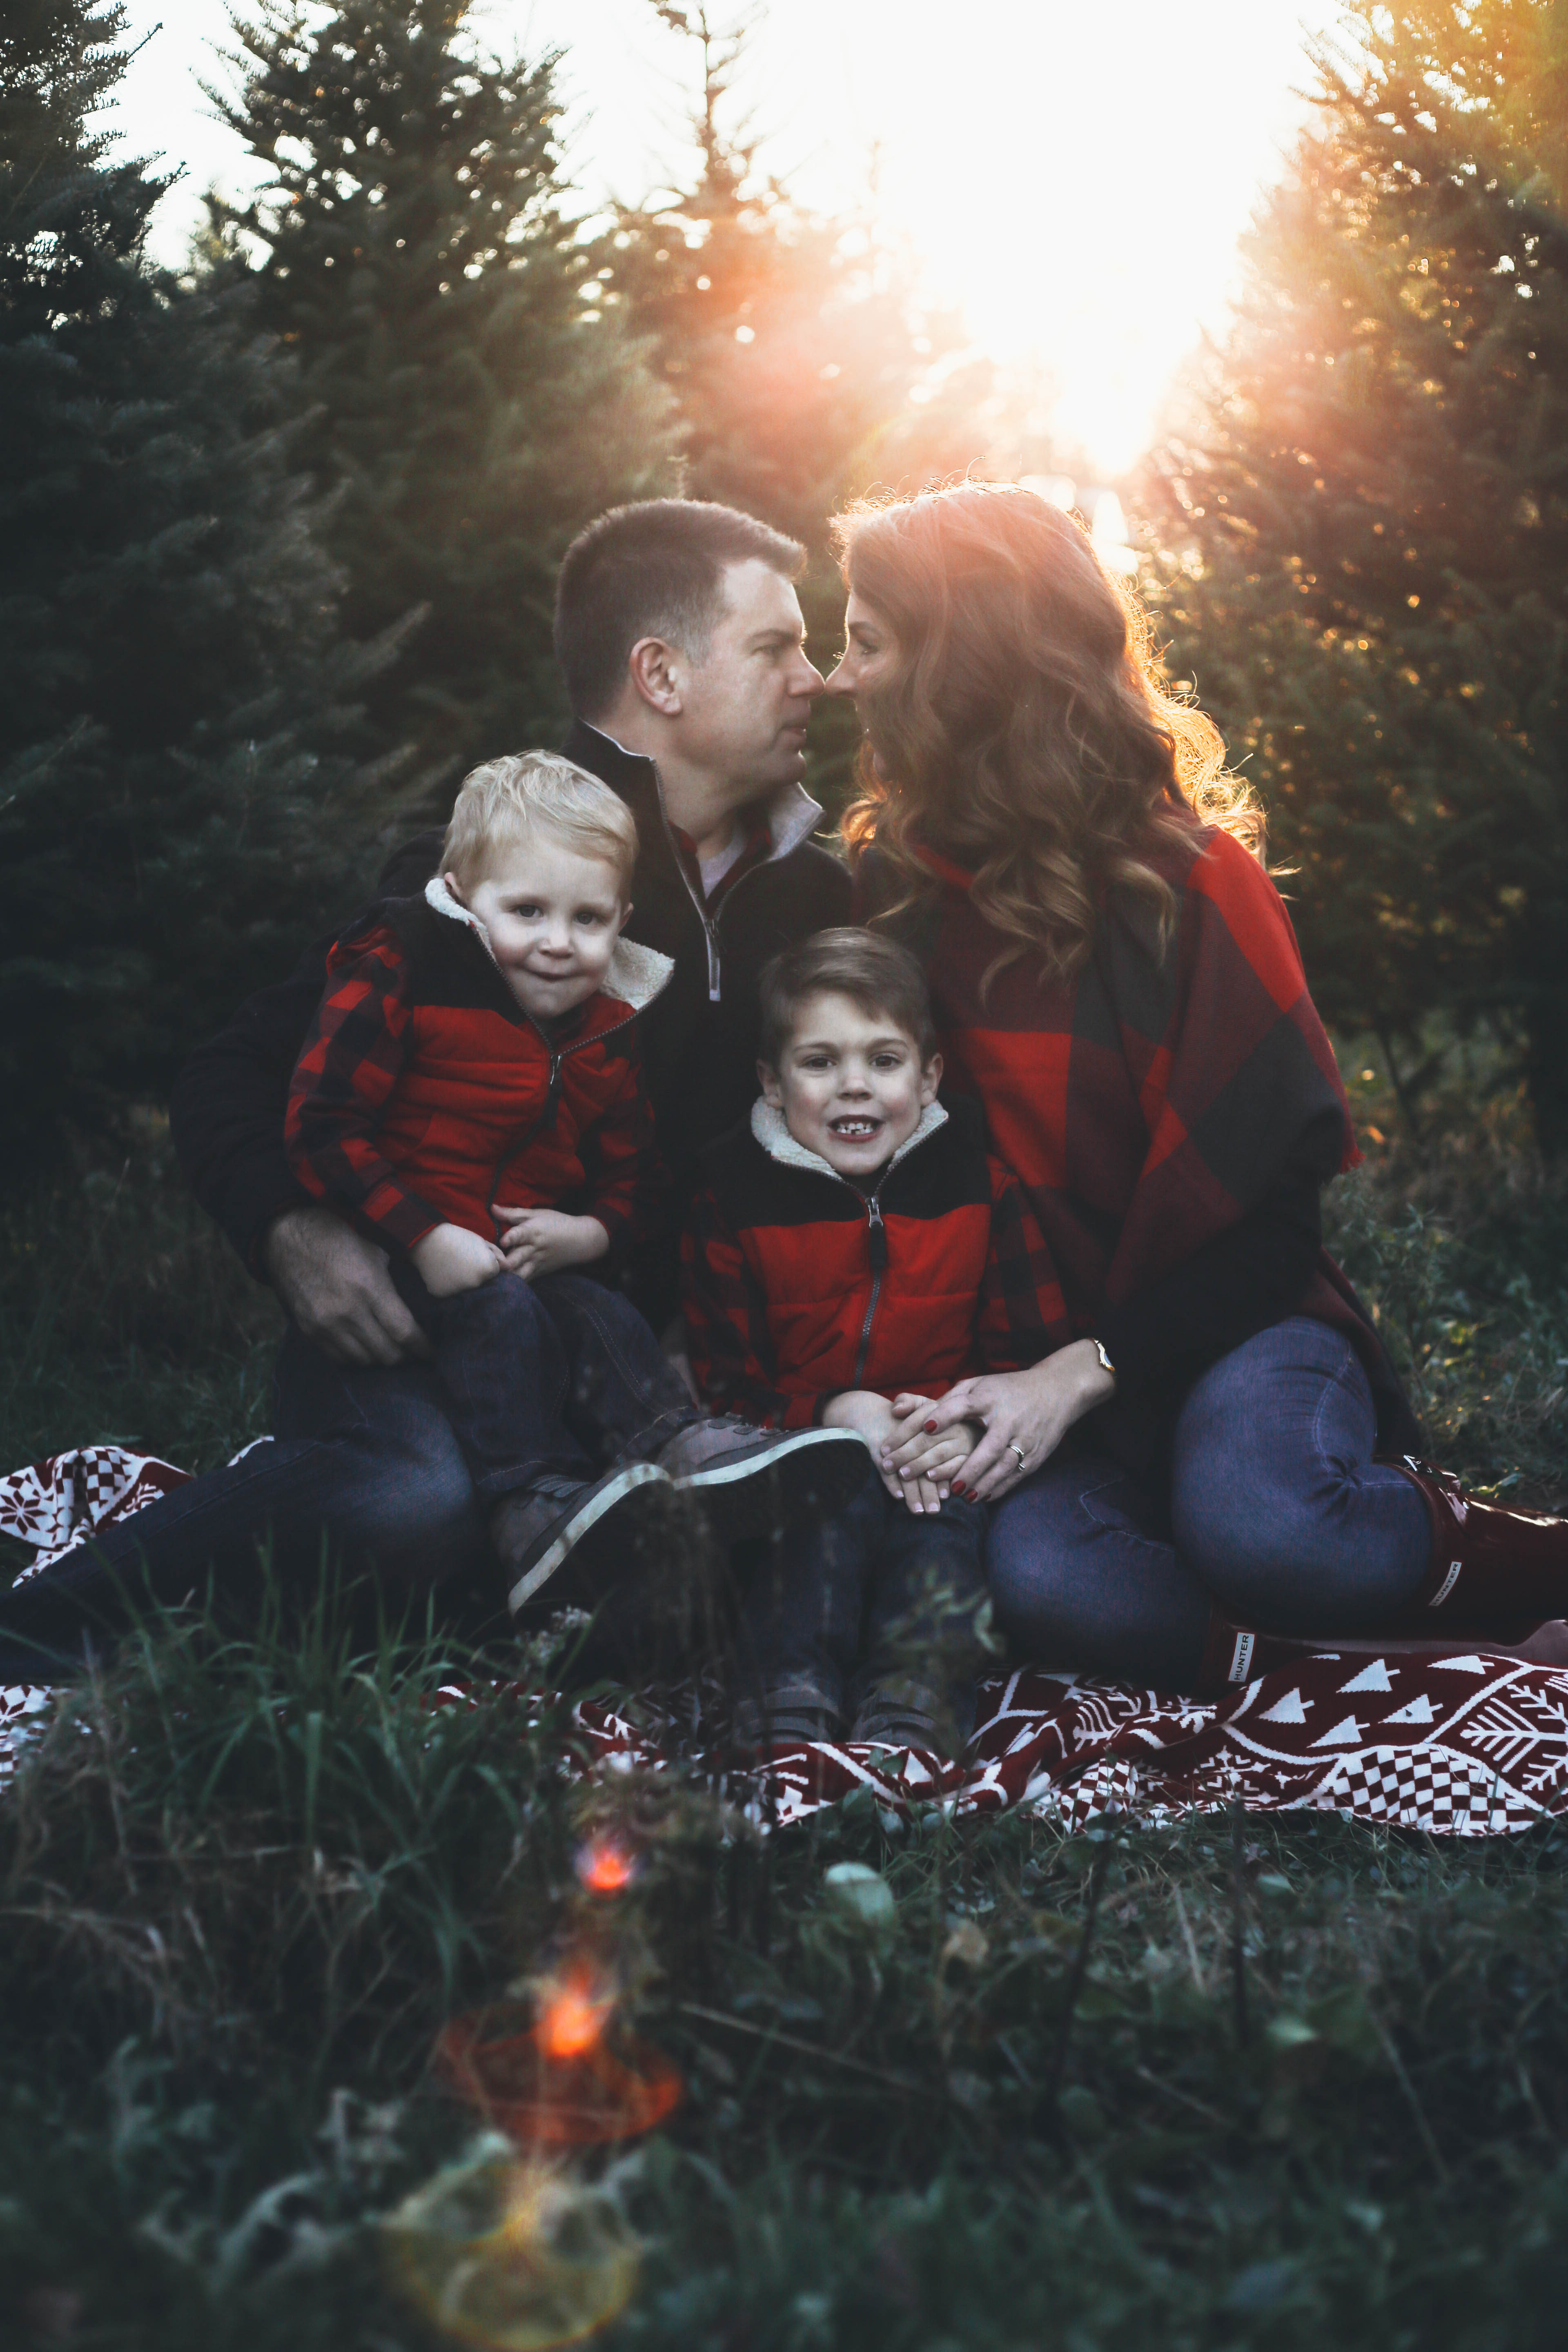 Family Christmas Pictures.Merry Christmas Tree Farm Family Pictures From The